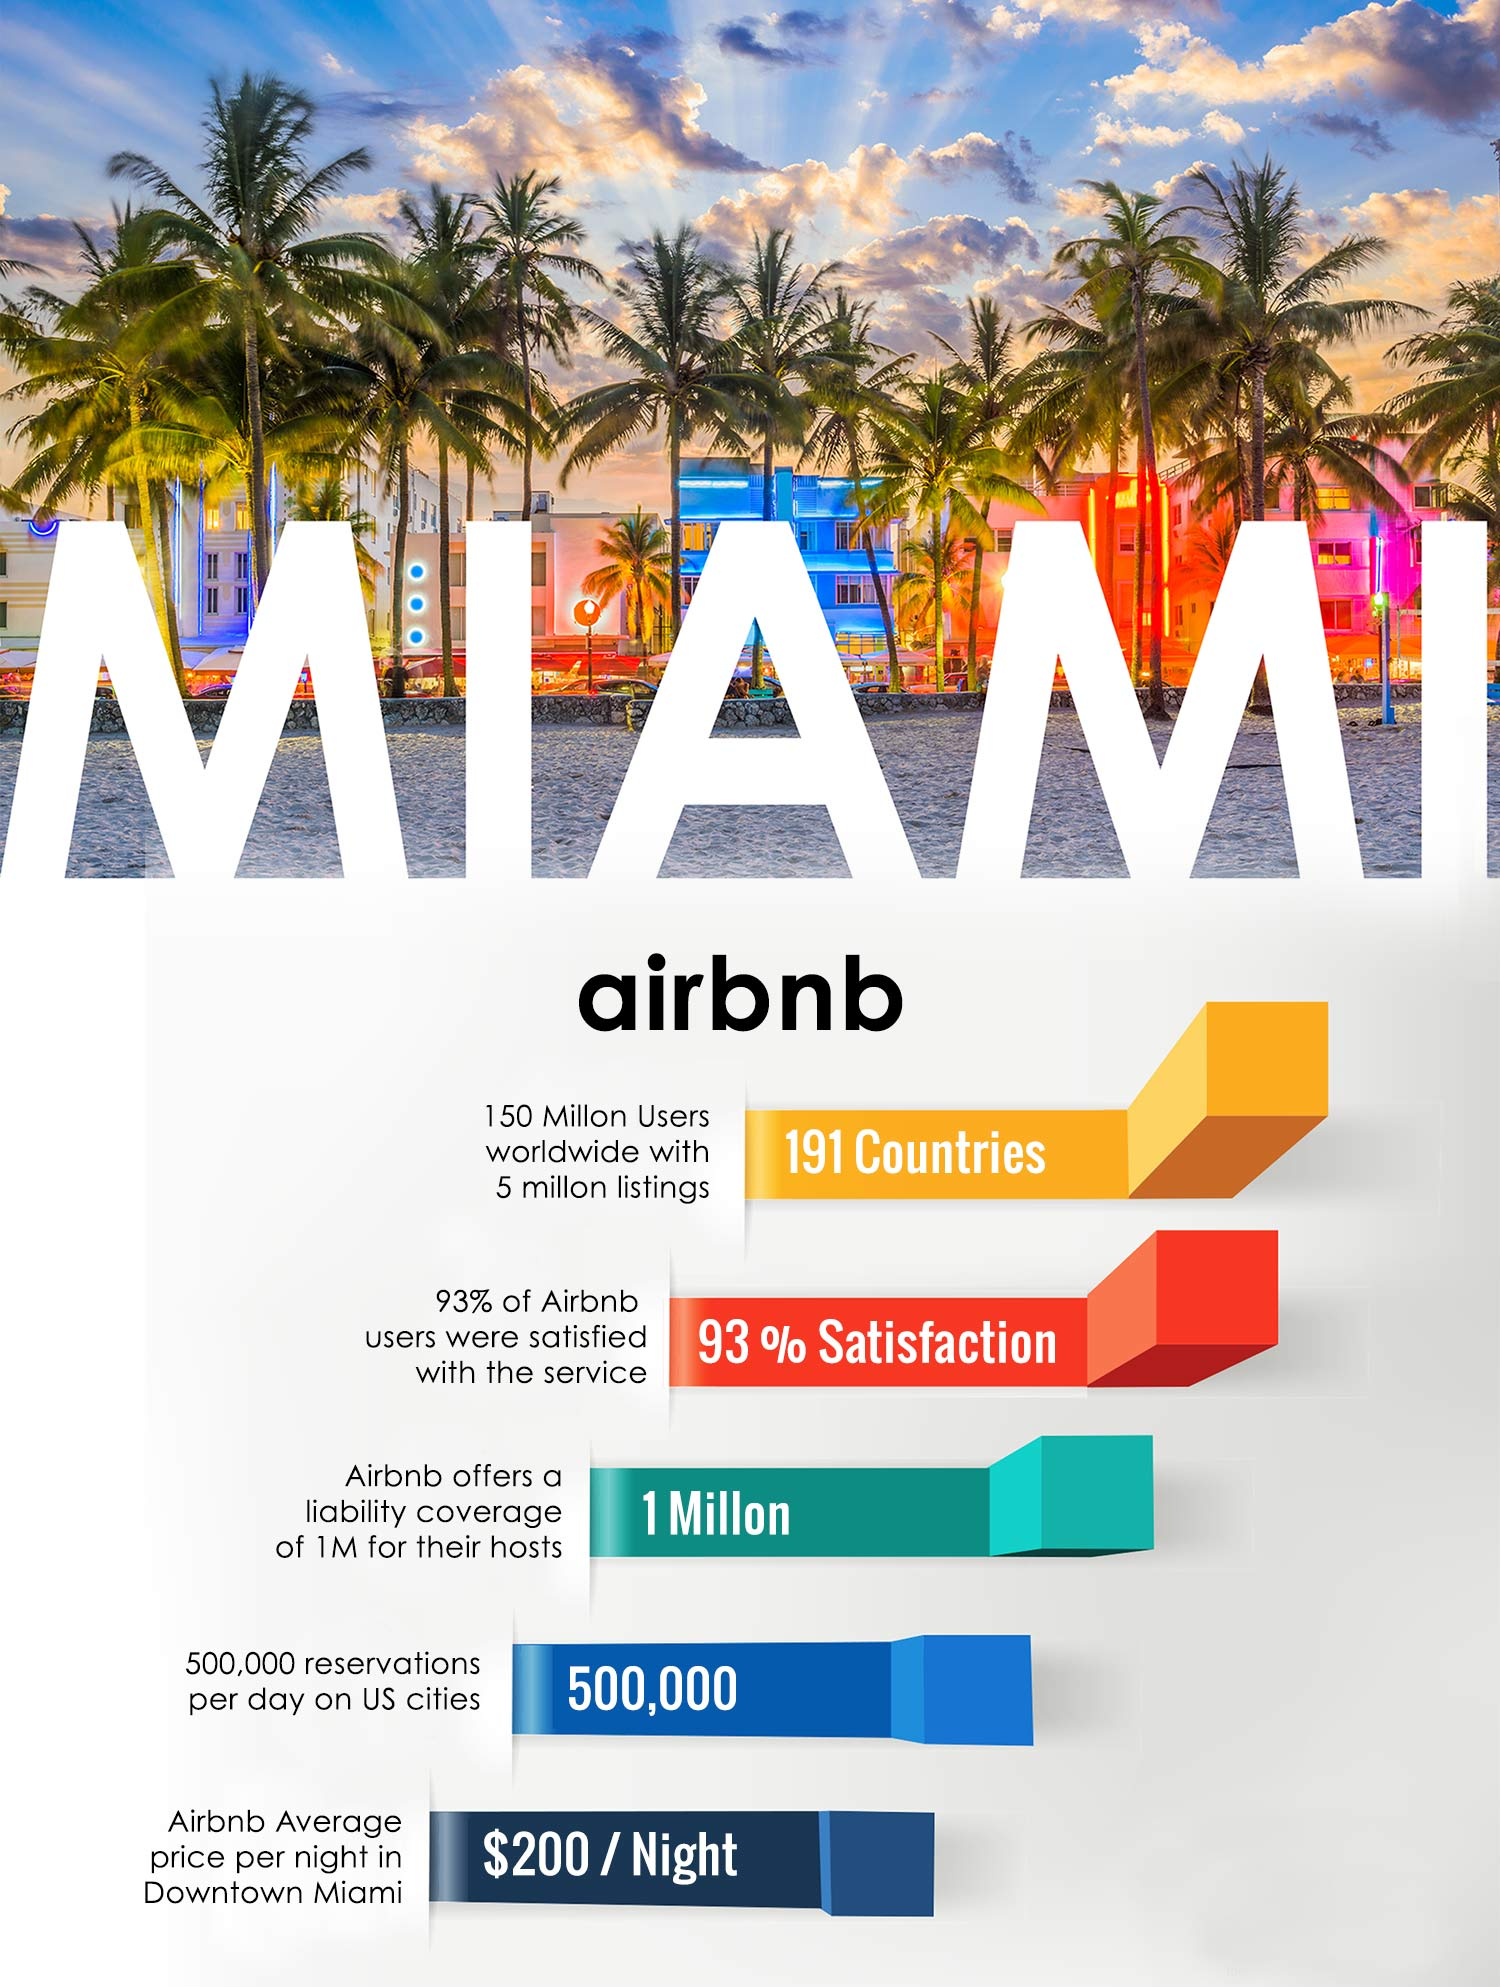 Miami Airbnb Condos for sale investment